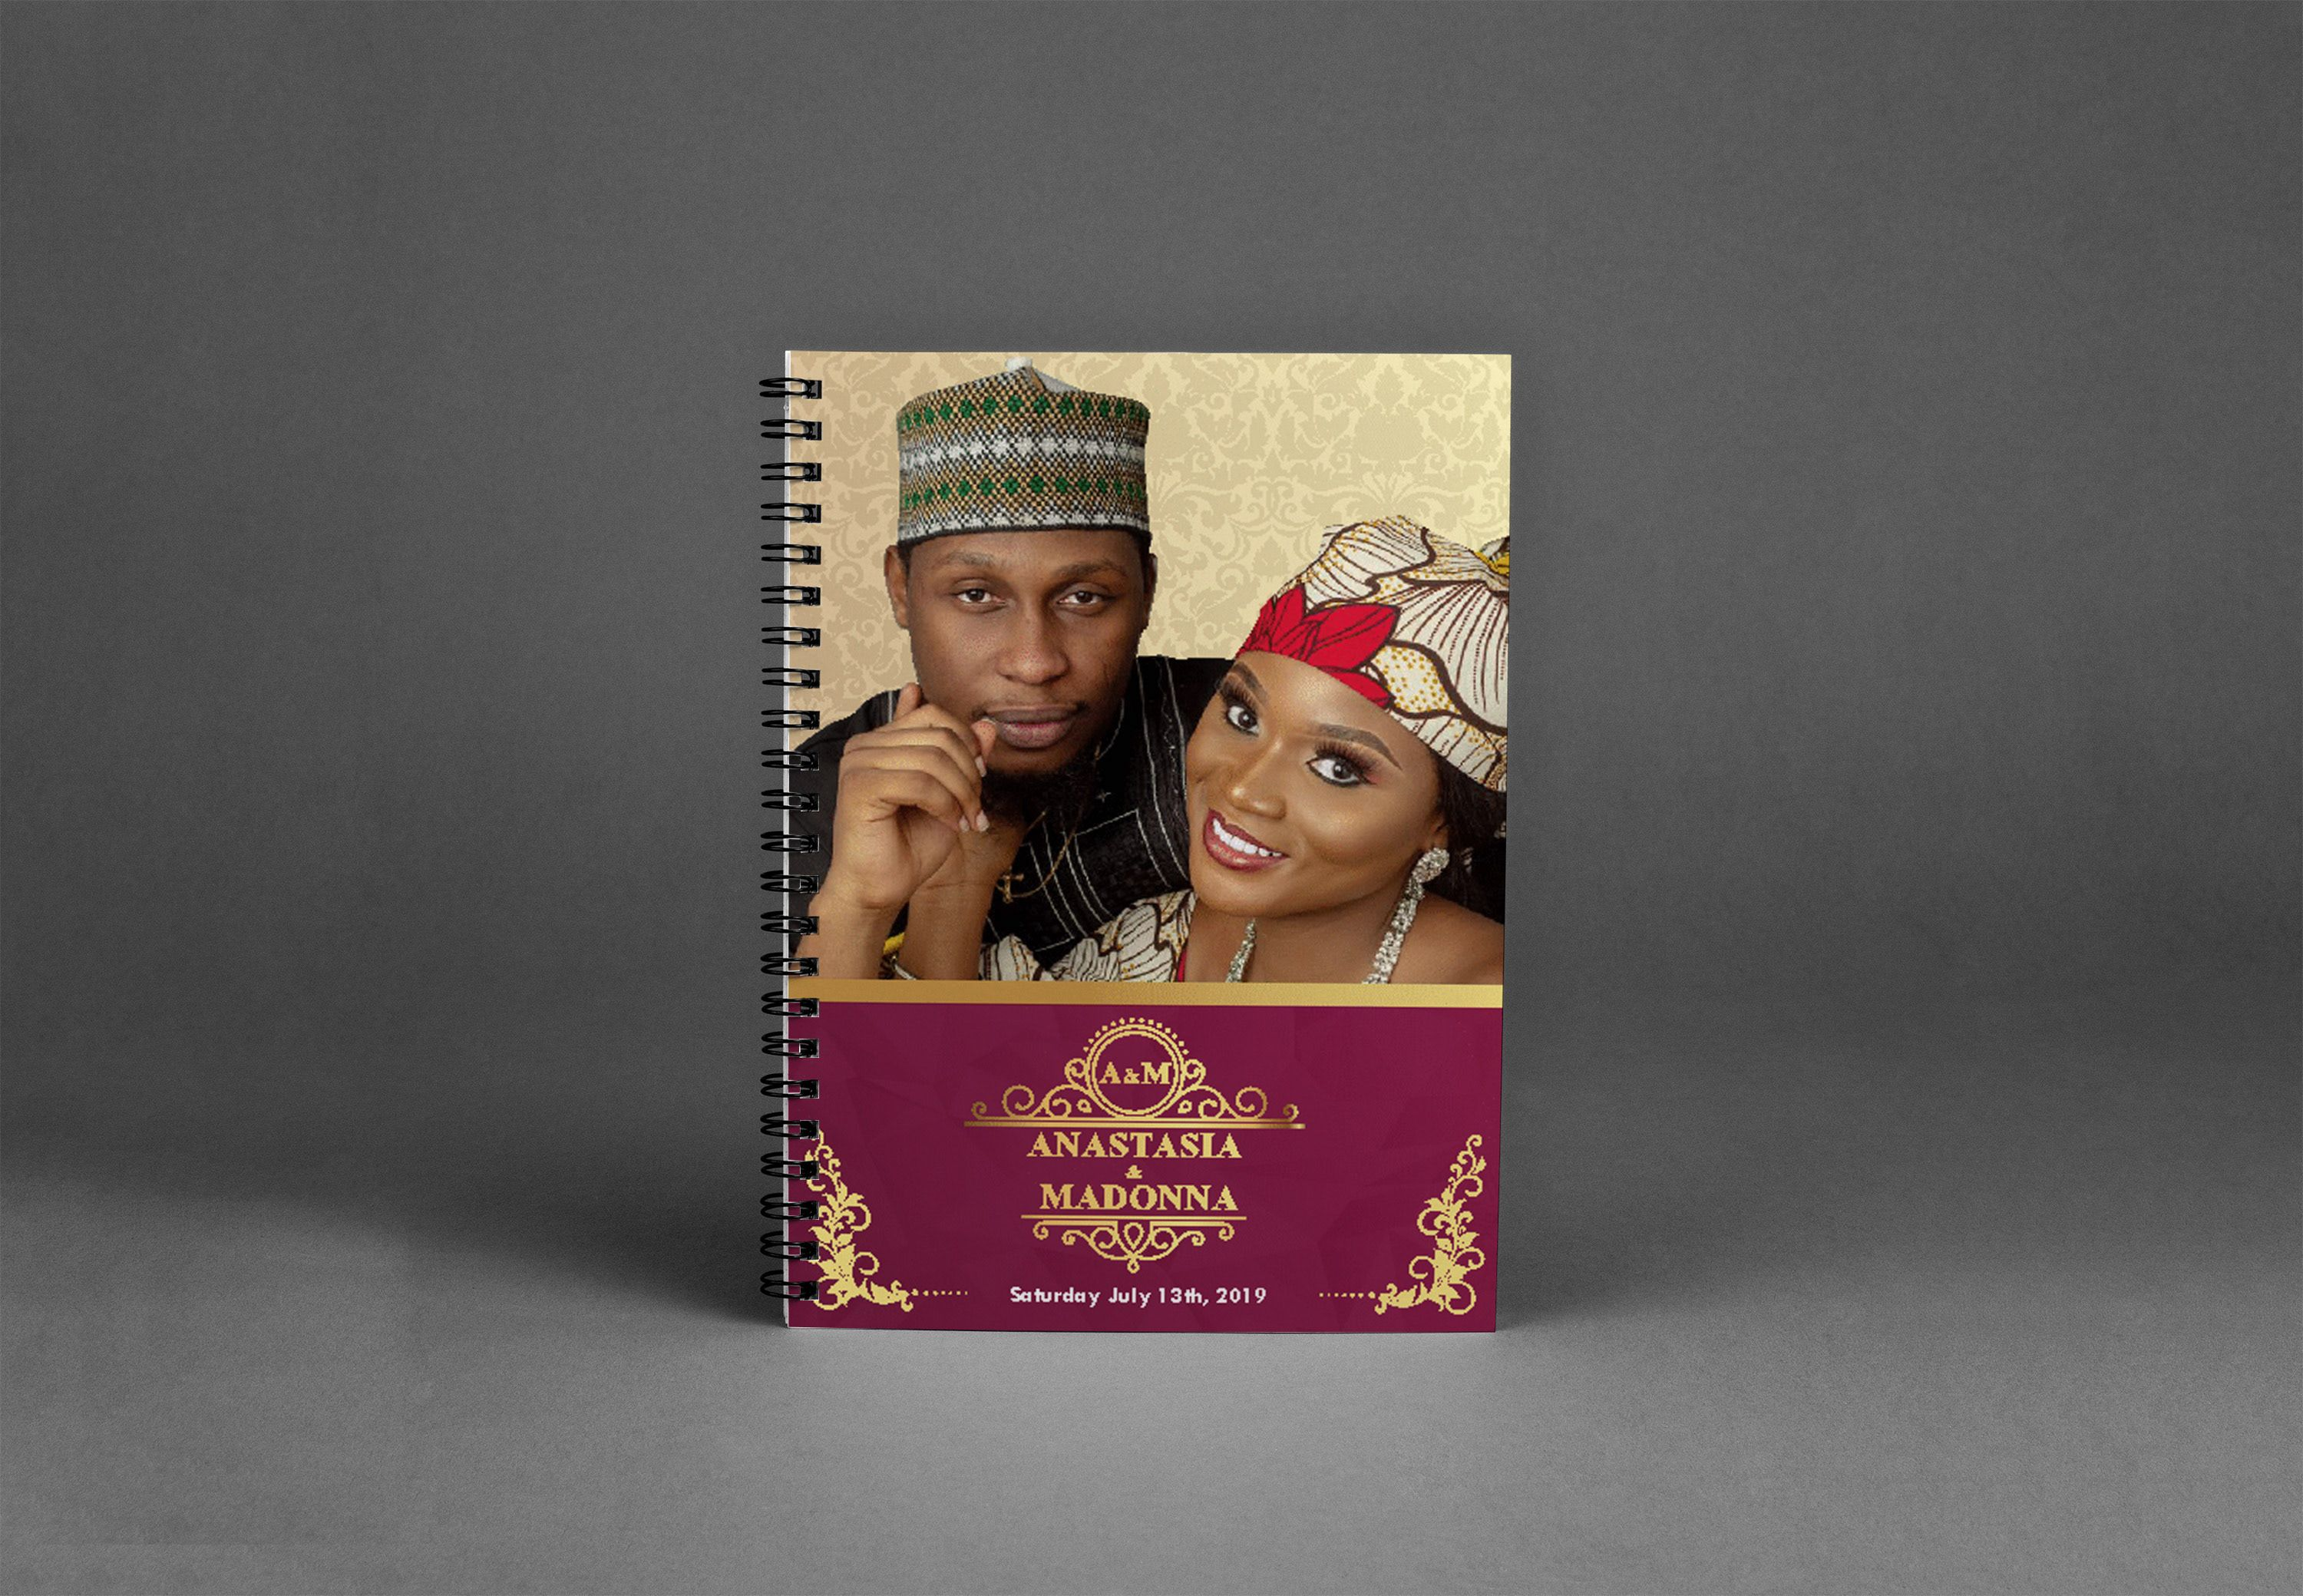 Check Out My Behance Project Wedding Jotter Design Https Www Behance Net Gallery 81706353 Wedding Jotter Design Jotter Design Graphic Design Posters